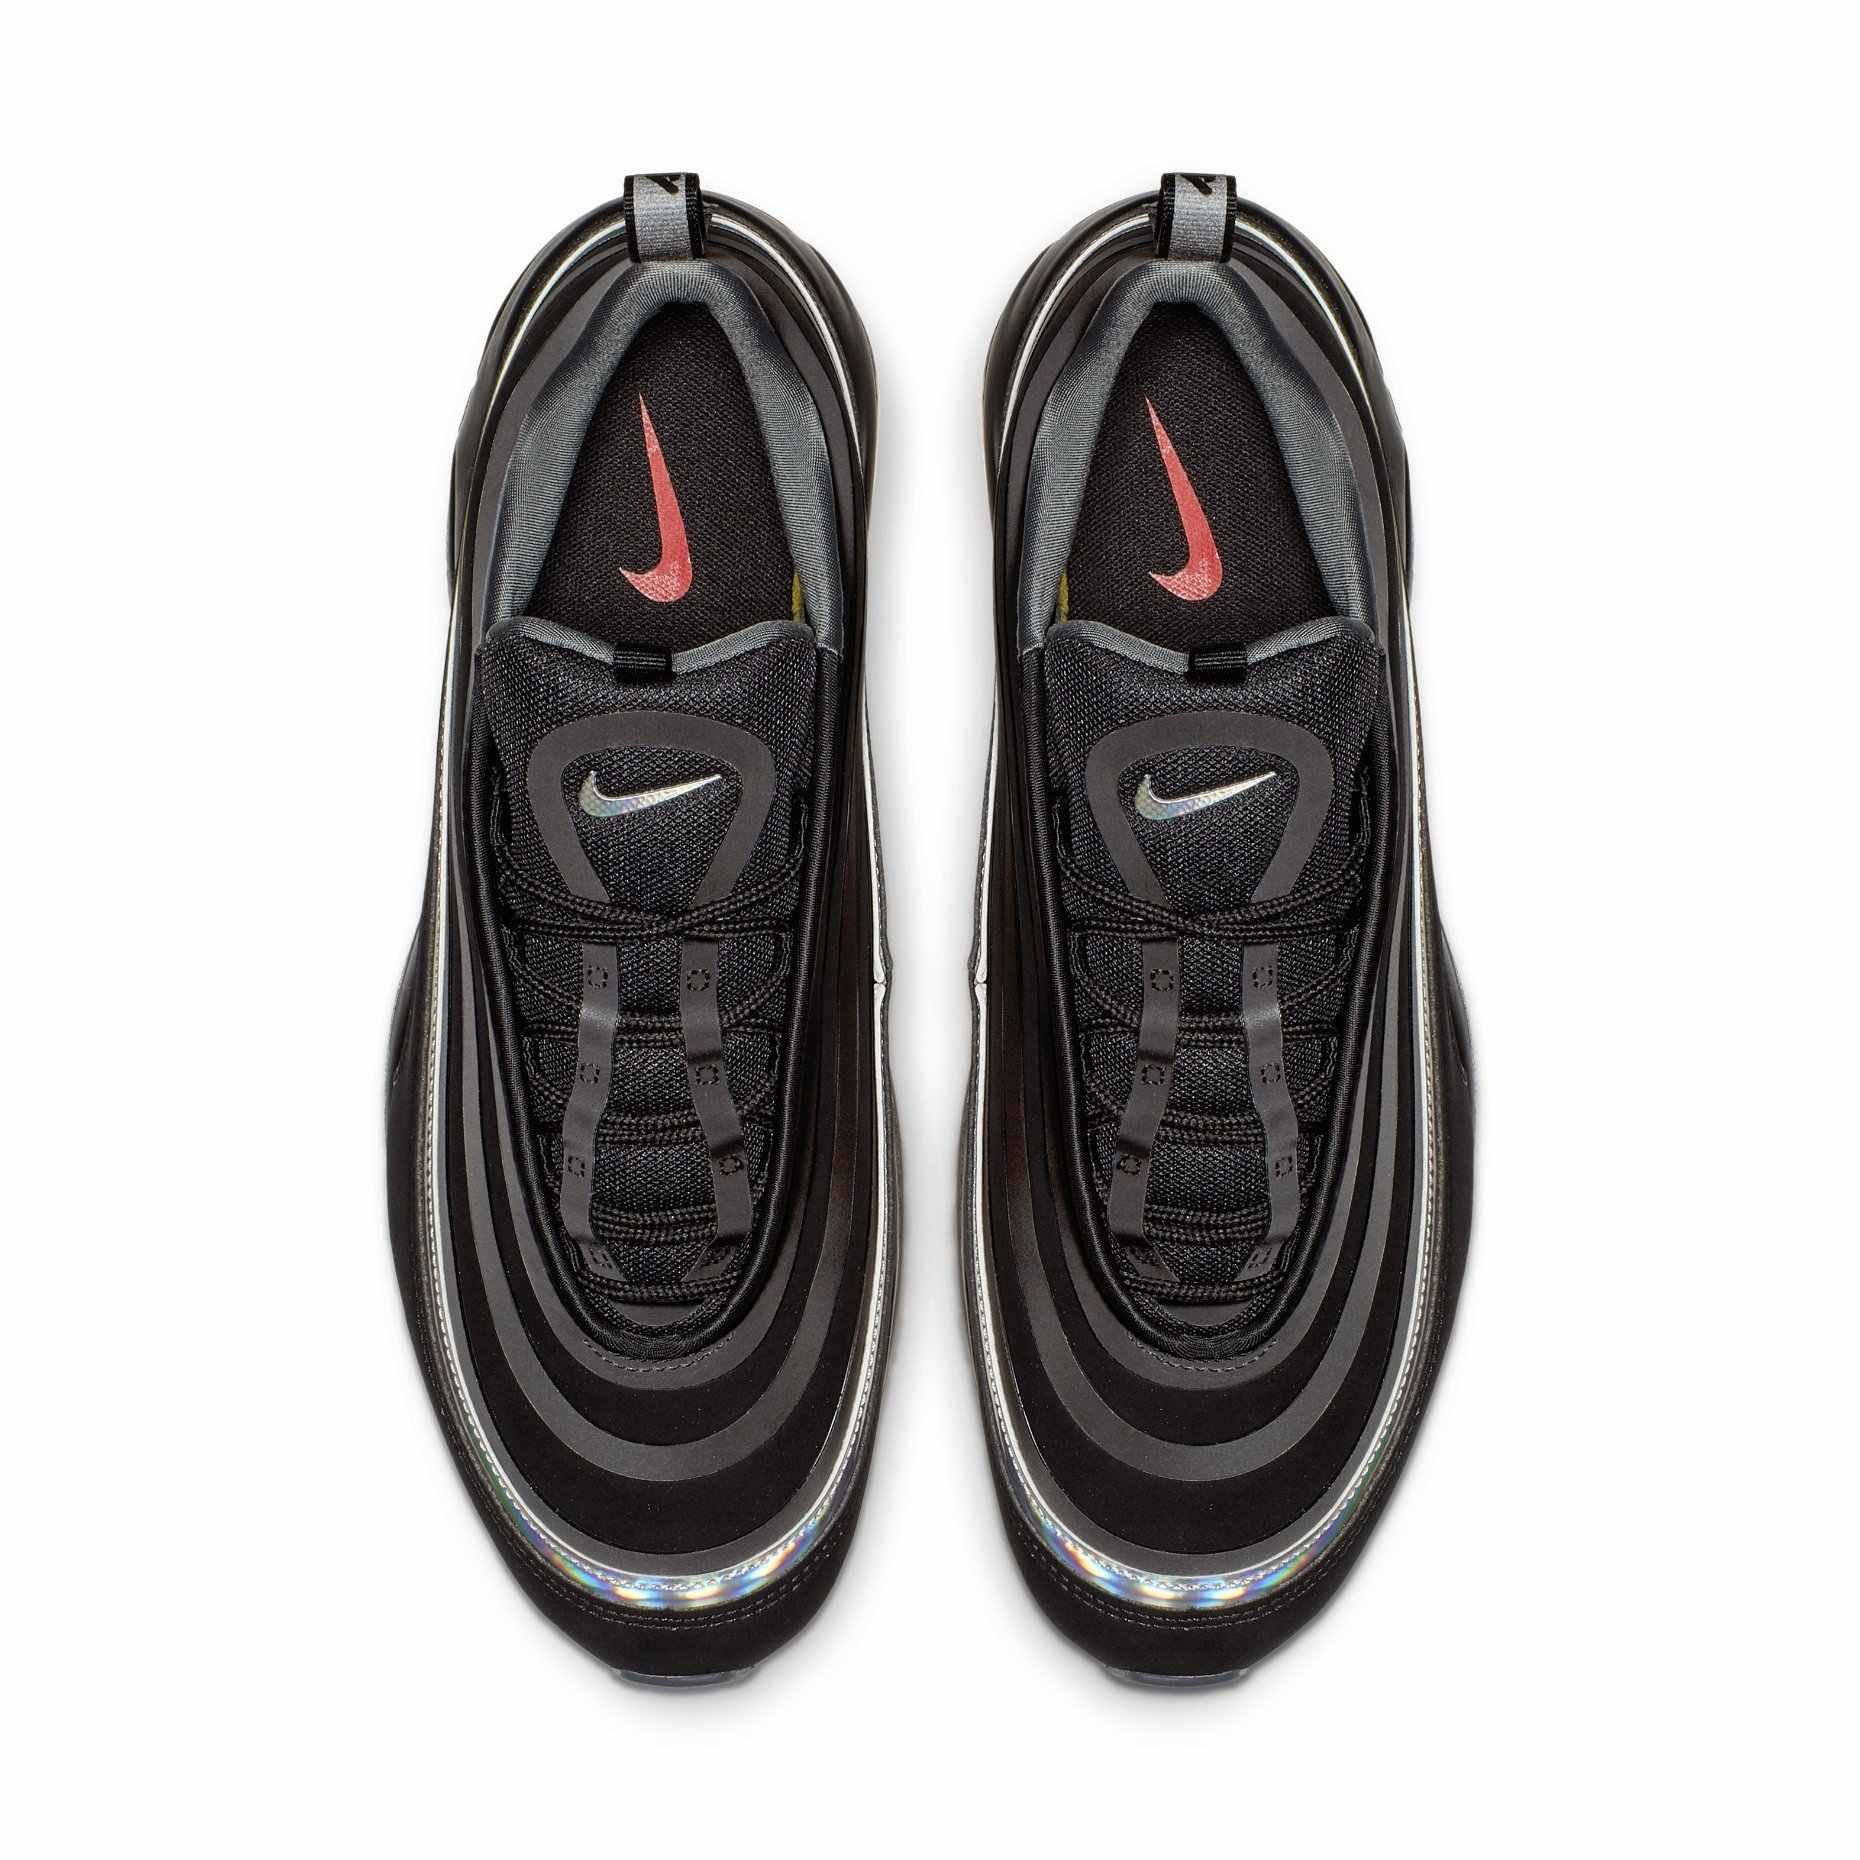 US $66.24 82% OFFNike Air Max 97 Ul '17 Ultra Nyhed Mand Løbesko Bevægelse Fritid Komfortable åndbare sneakers # BV6666 016106 i Nike Air Max 97 Ul '17 Ultra New Arrival Man Running Shoes Motion Leisure Time Comfortable Breathable Sneakers#BV6666 016106 in